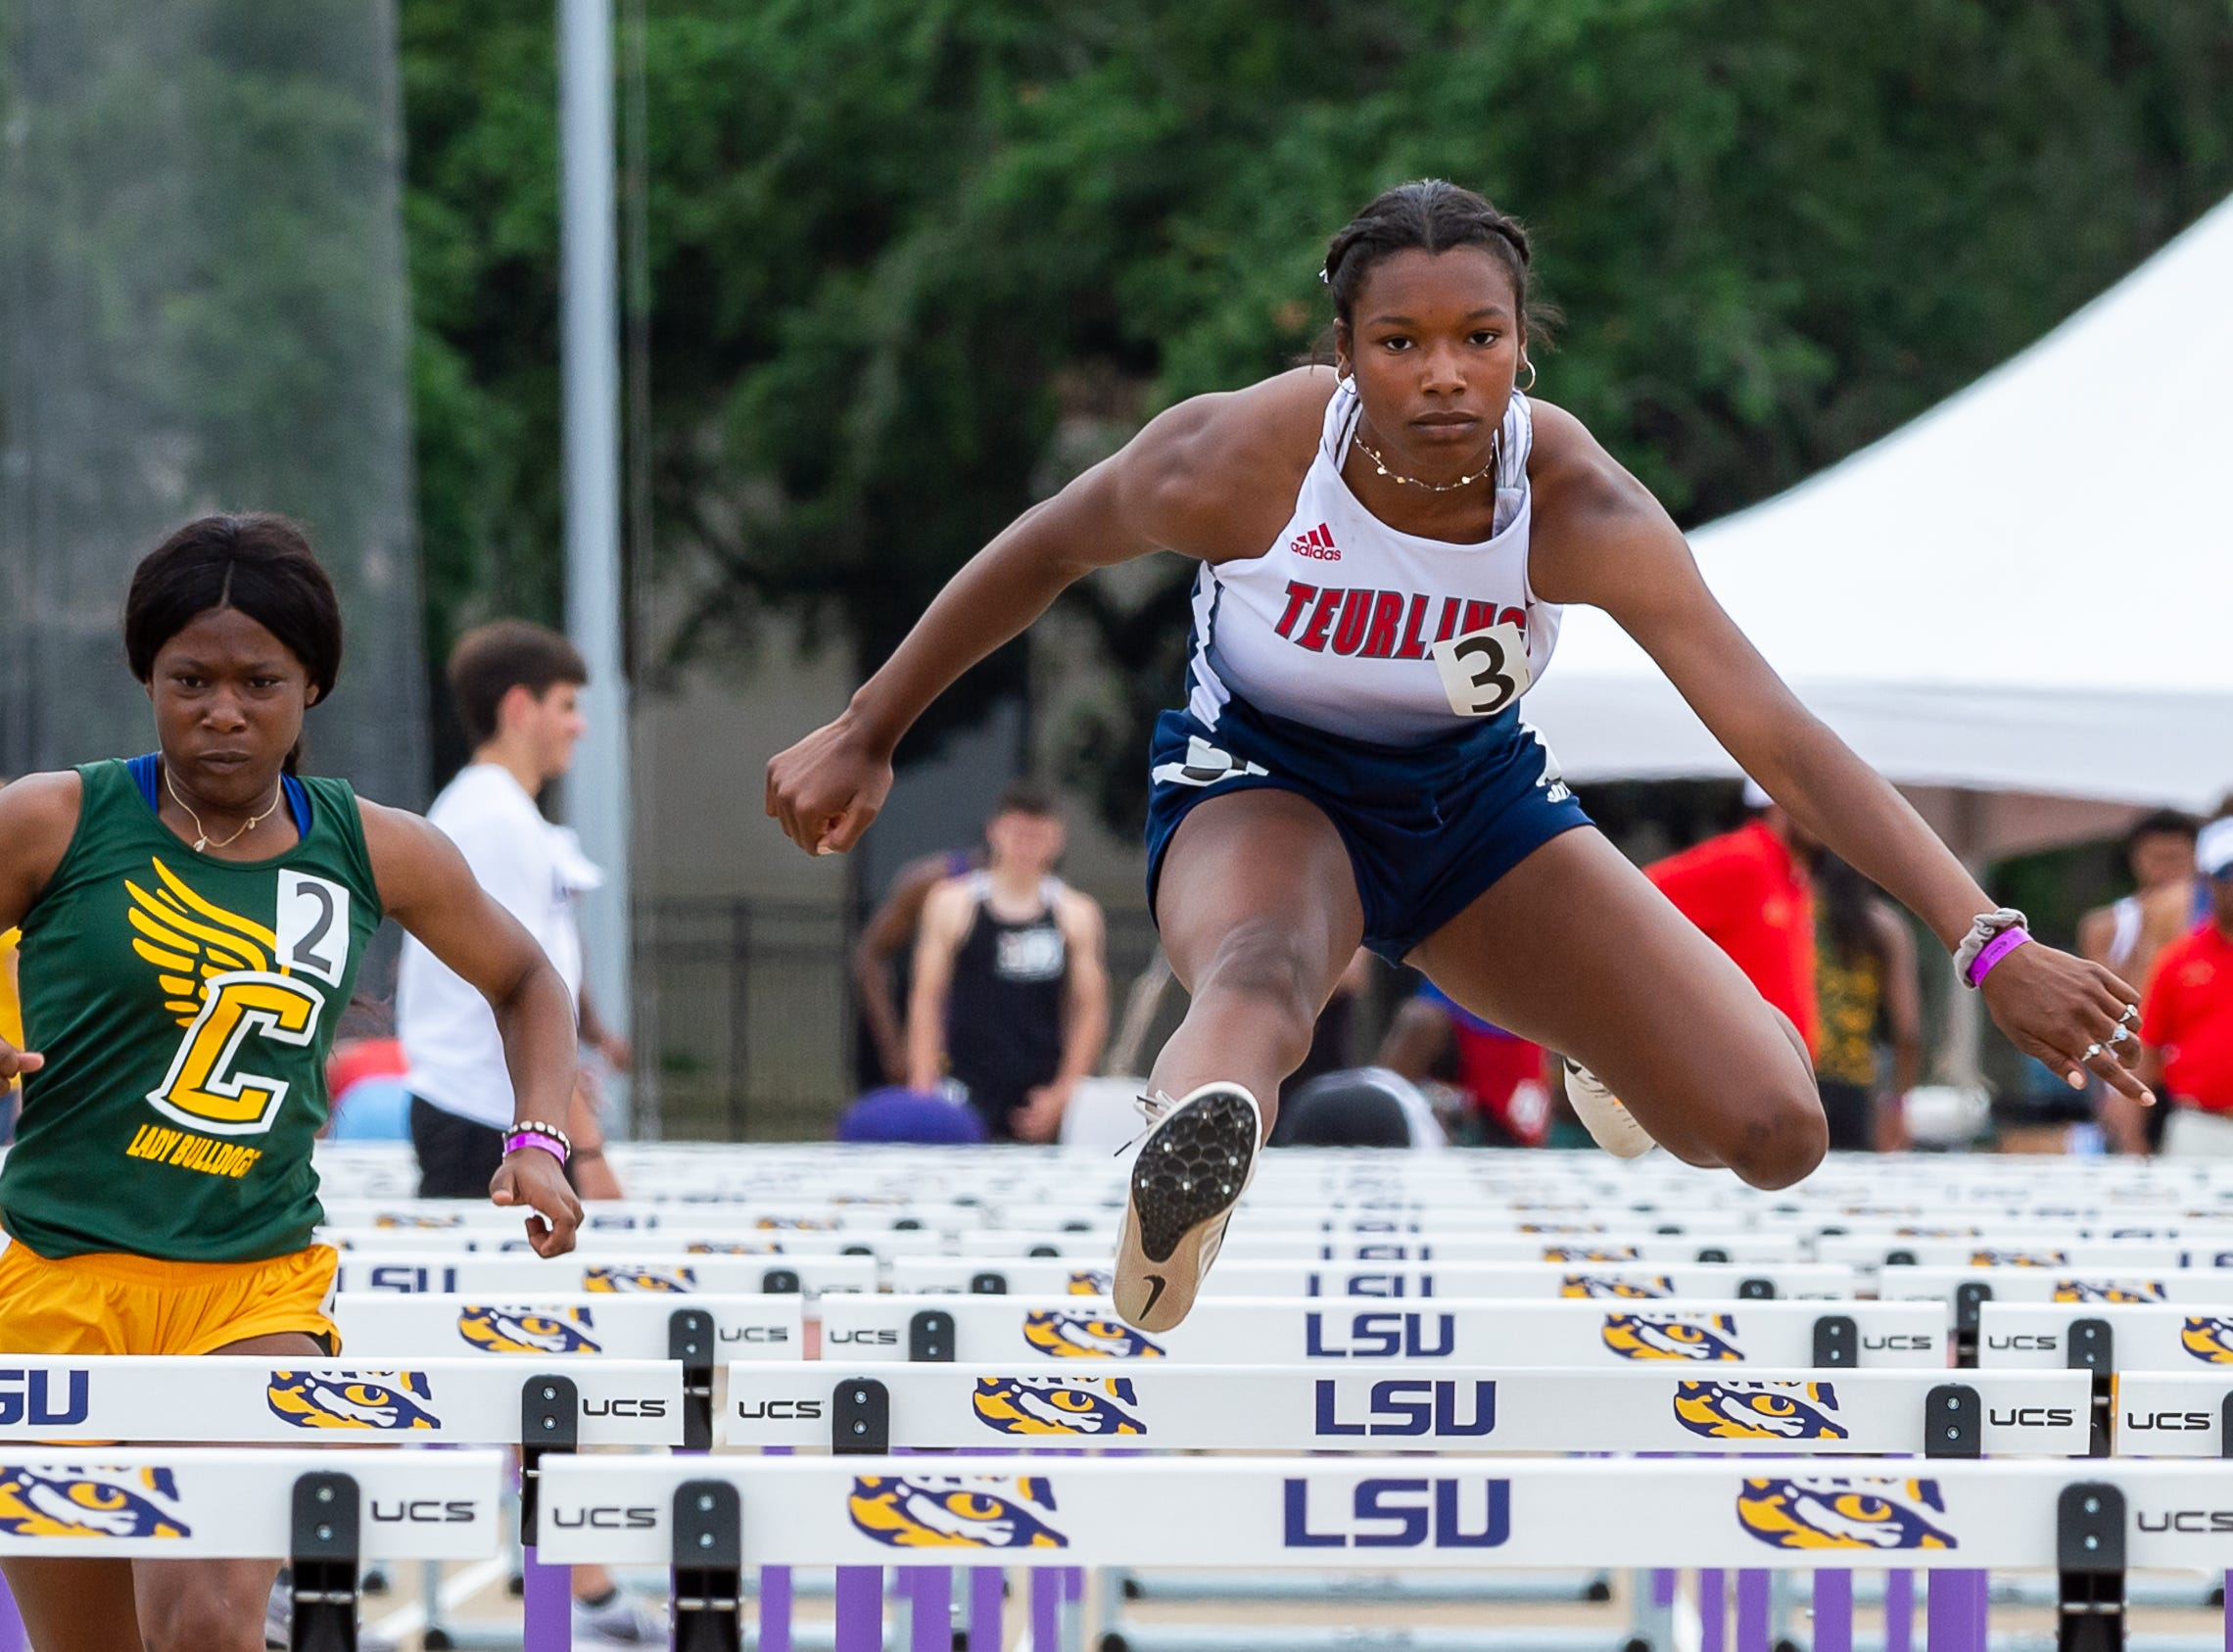 Teurlings Catholic Tyler Alcorn competes in the girls 100m hurdles at the The LHSAA Sate Track Meet at Bernie Moore Track in Baton Rouge, LA. Saturday, May 4, 2019.